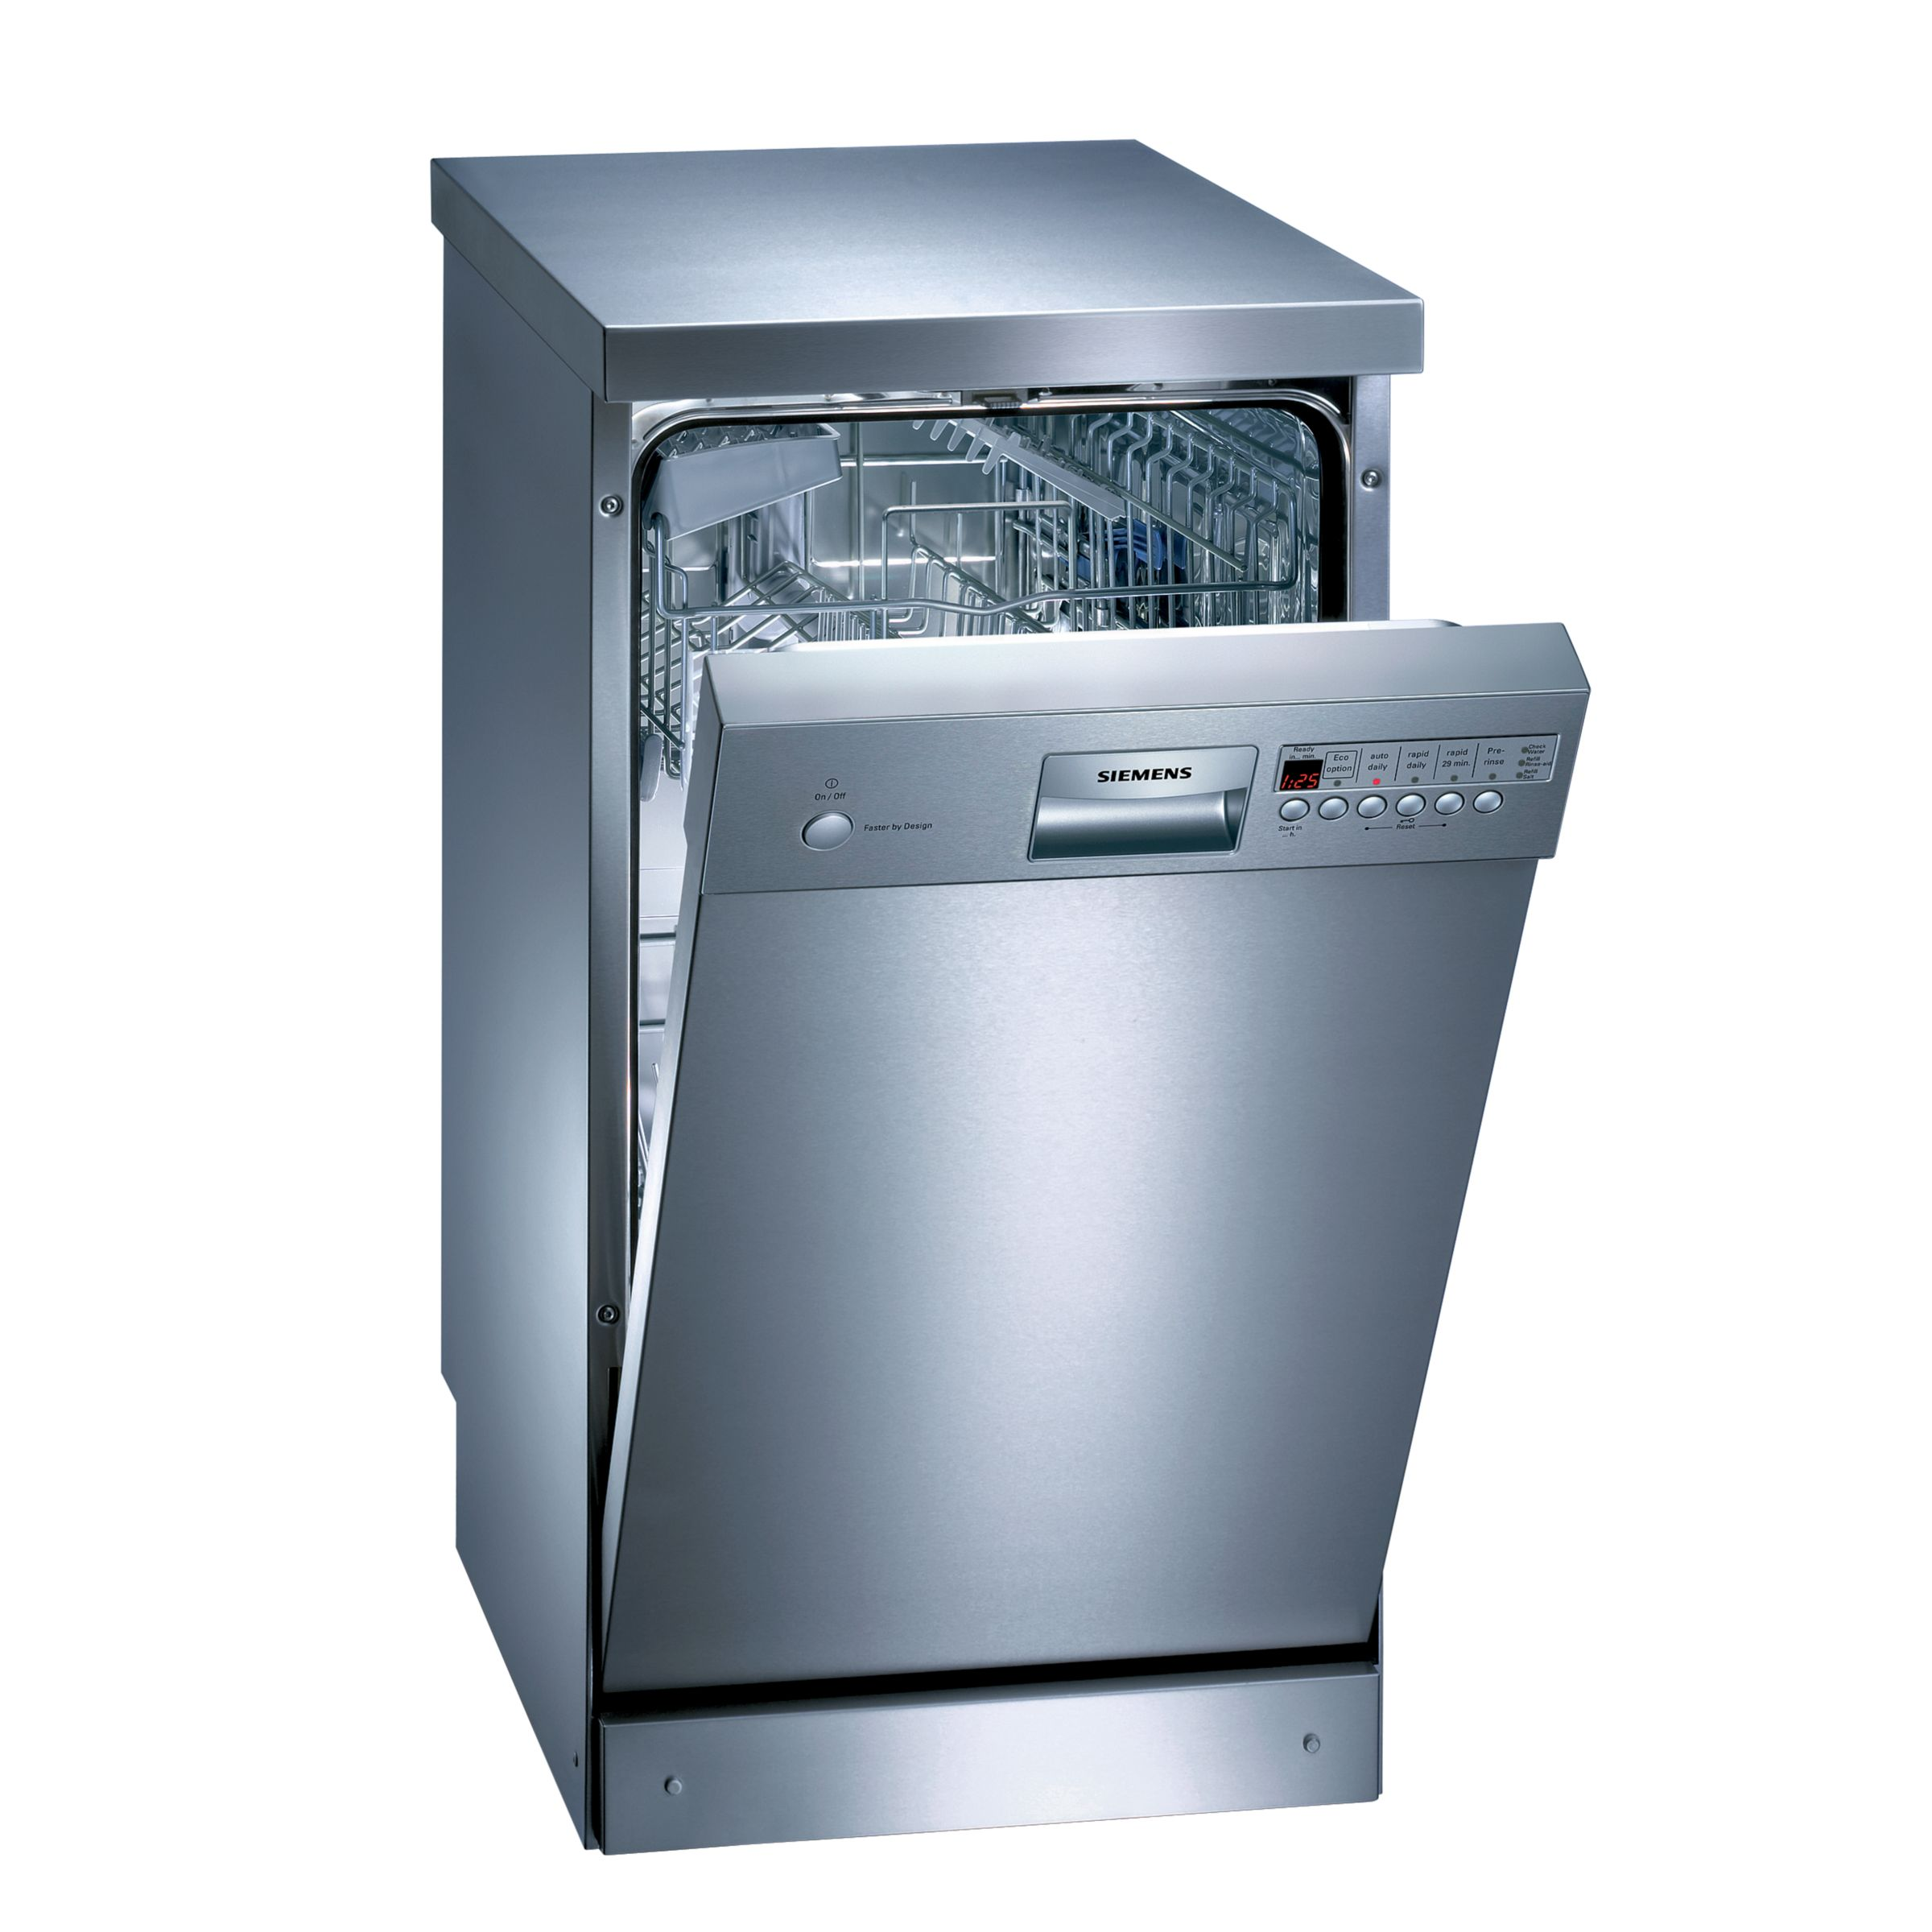 View our range of slimline dishwashers